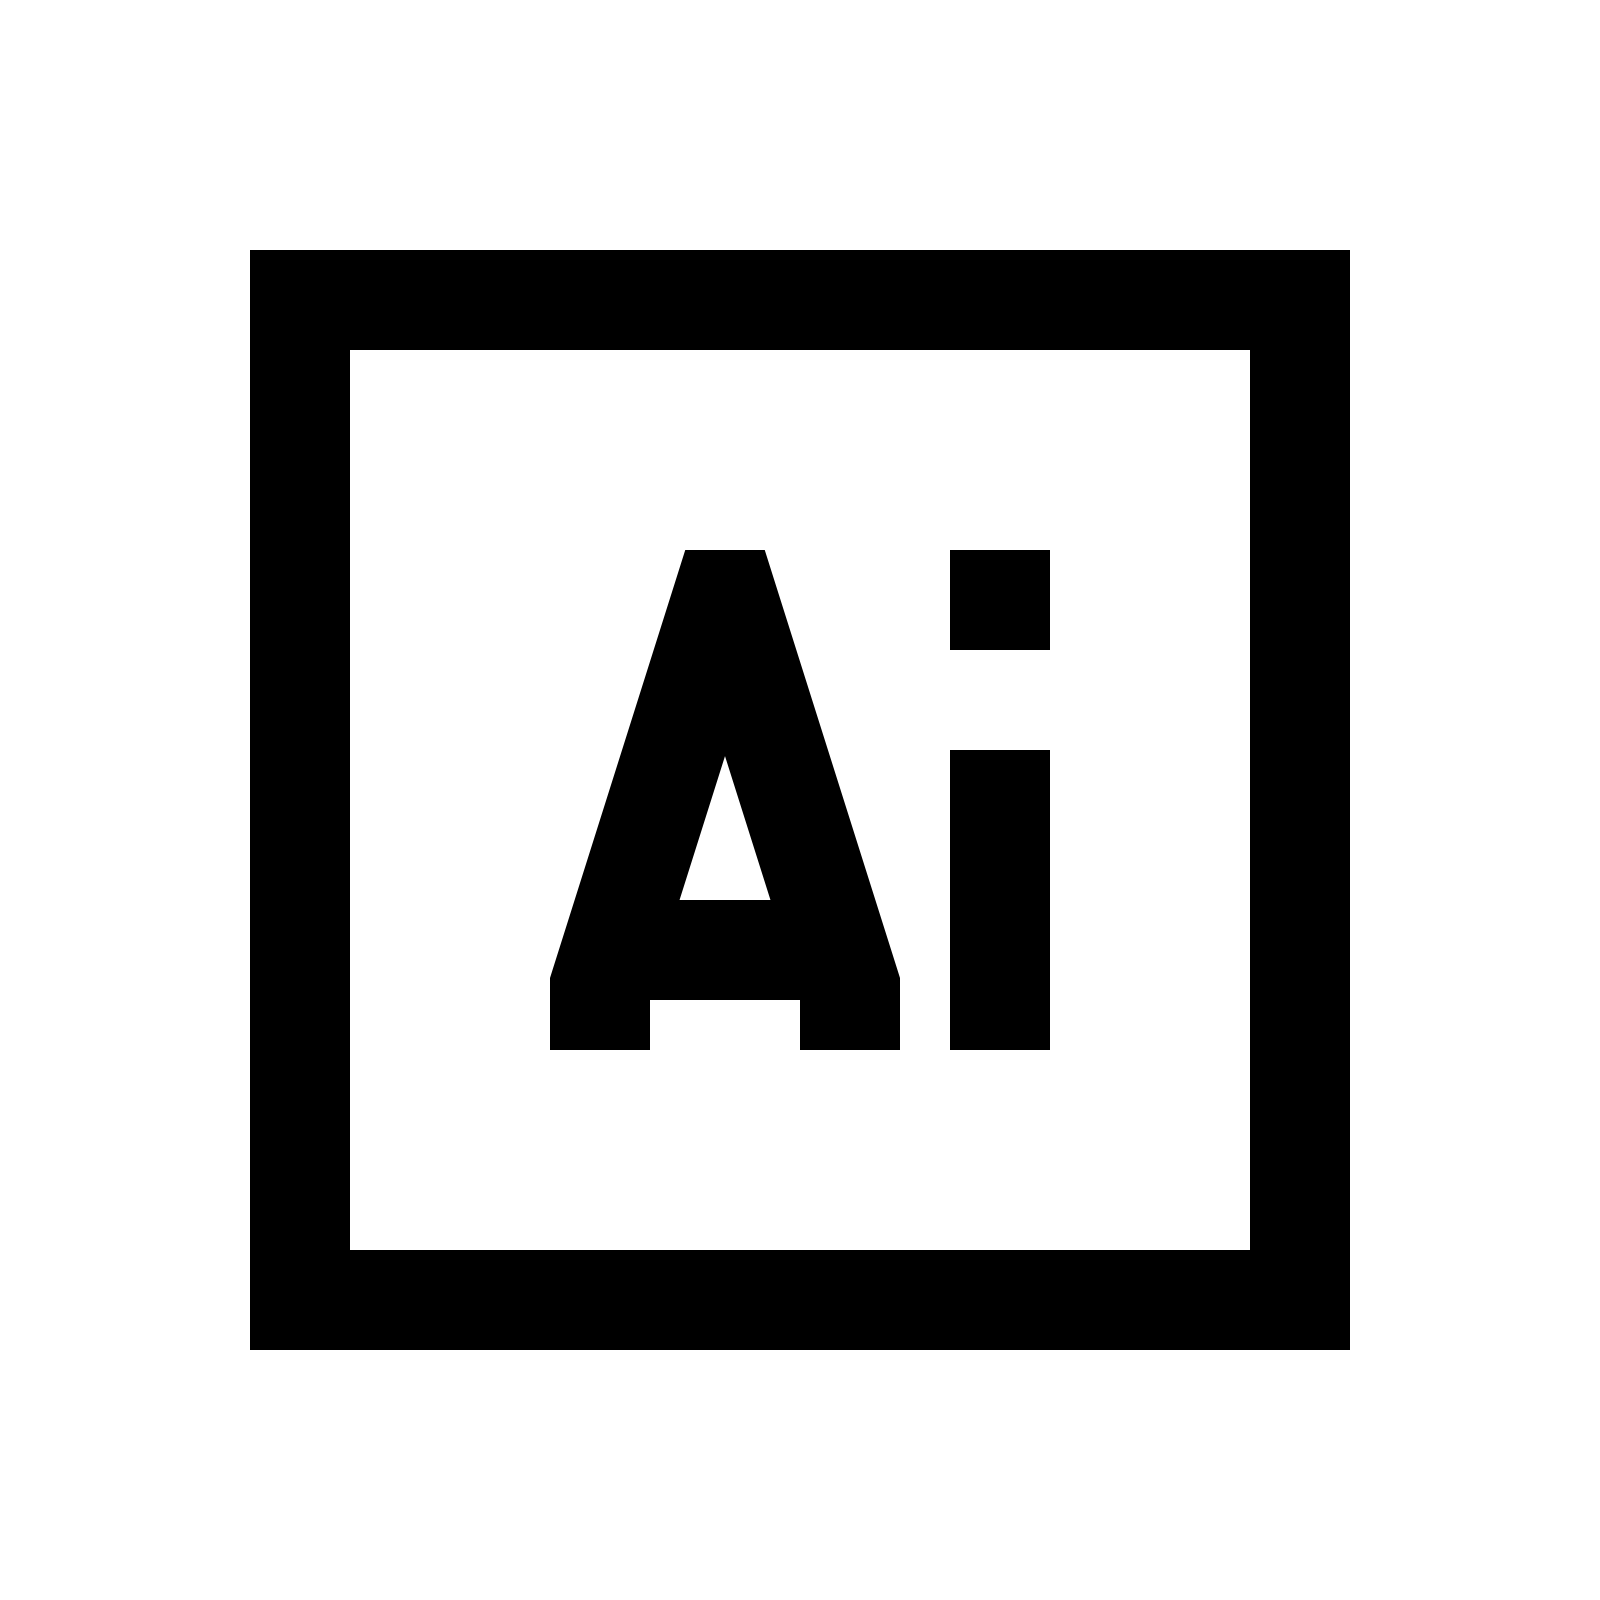 Adobe Illustrator icon - Adobe Black Logo Vector PNG